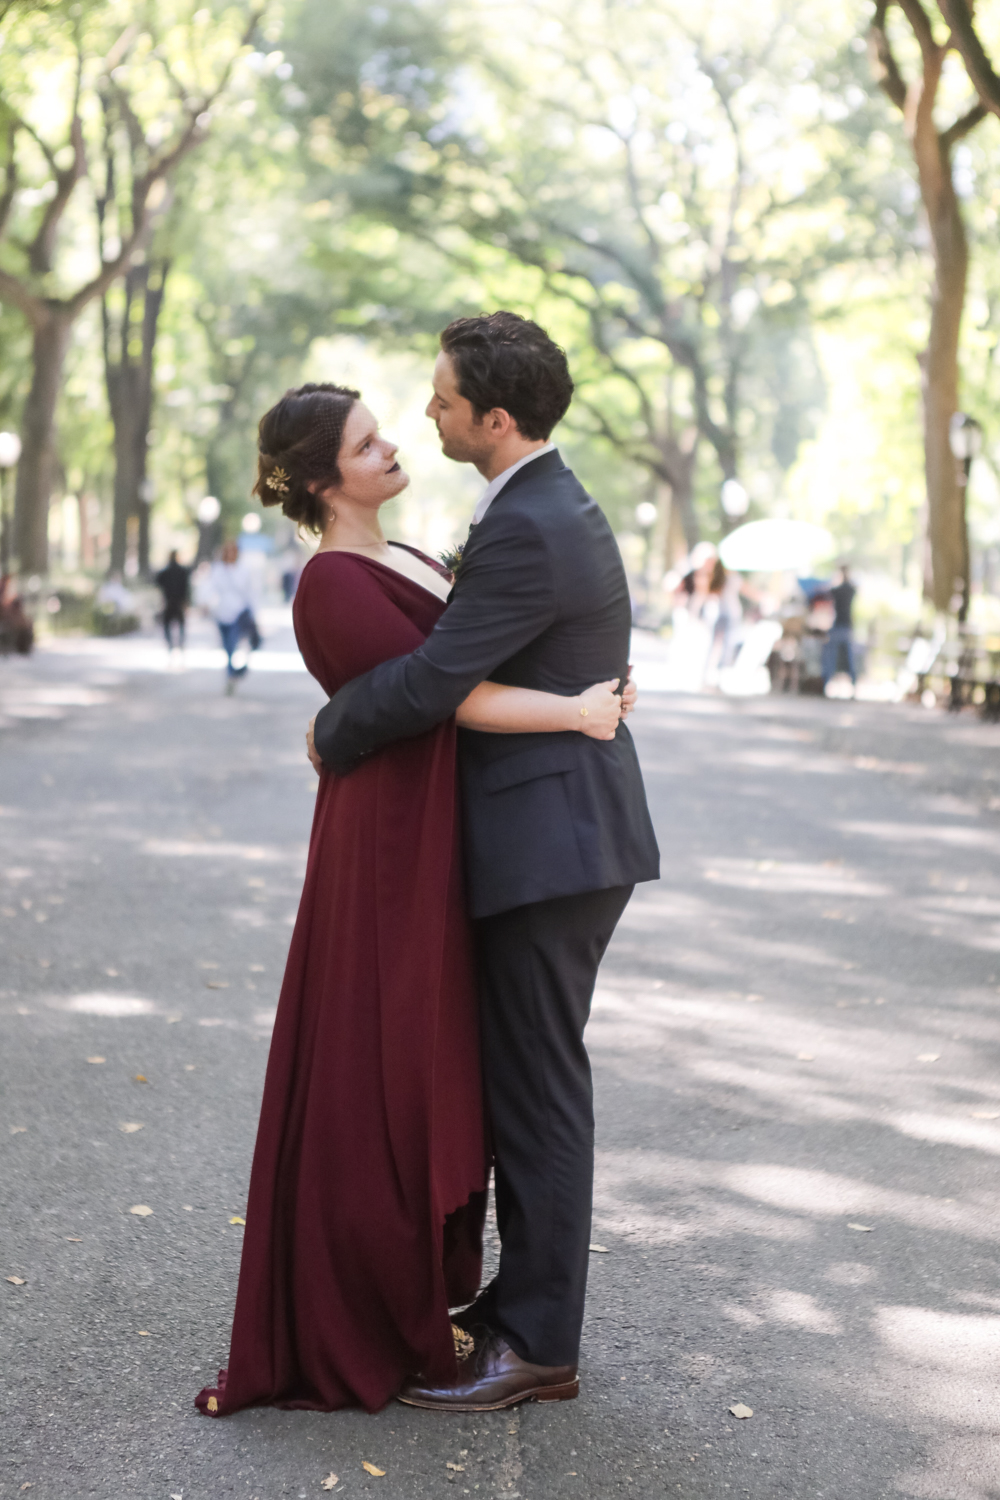 A bride and groom embrace after eloping in Central Park.